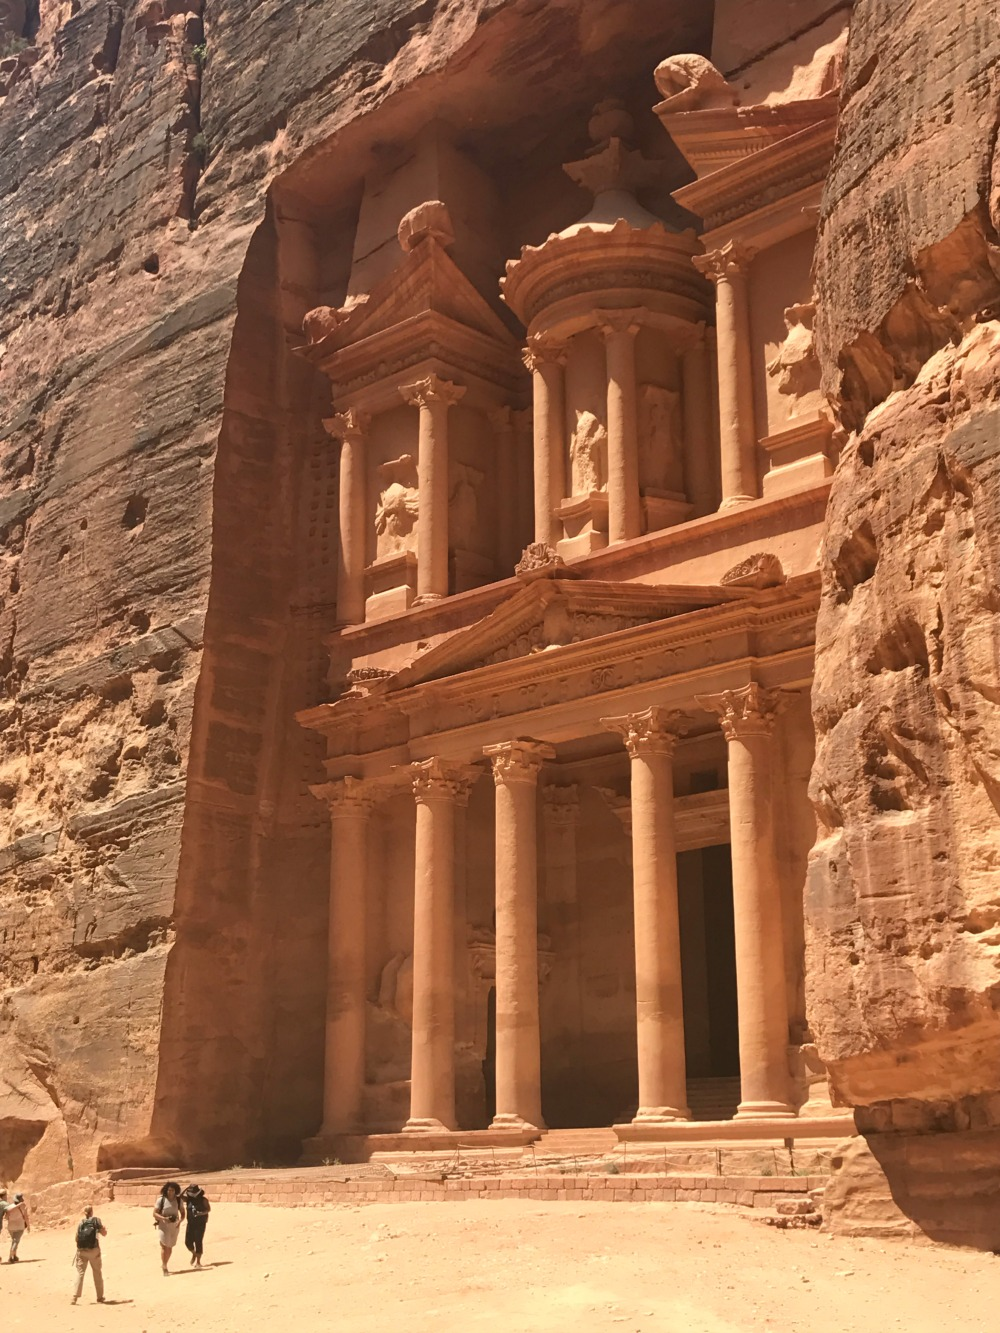 Petra is one of the many stunning landmarks in Jordan drawing tourists in from around the world.